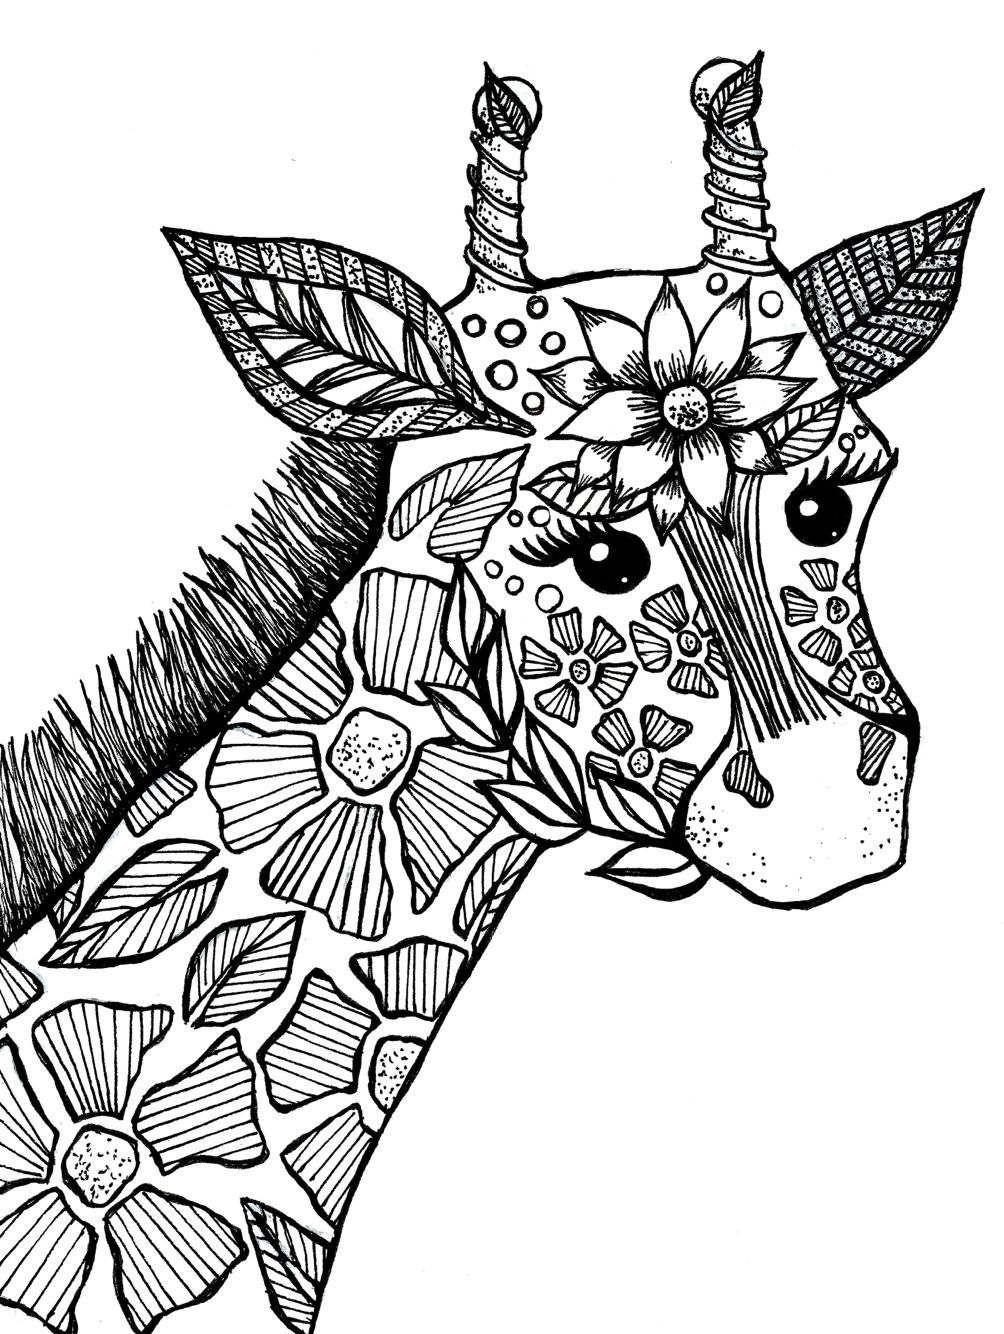 Colouring in for adults why - Giraffe Adult Coloring Book Page